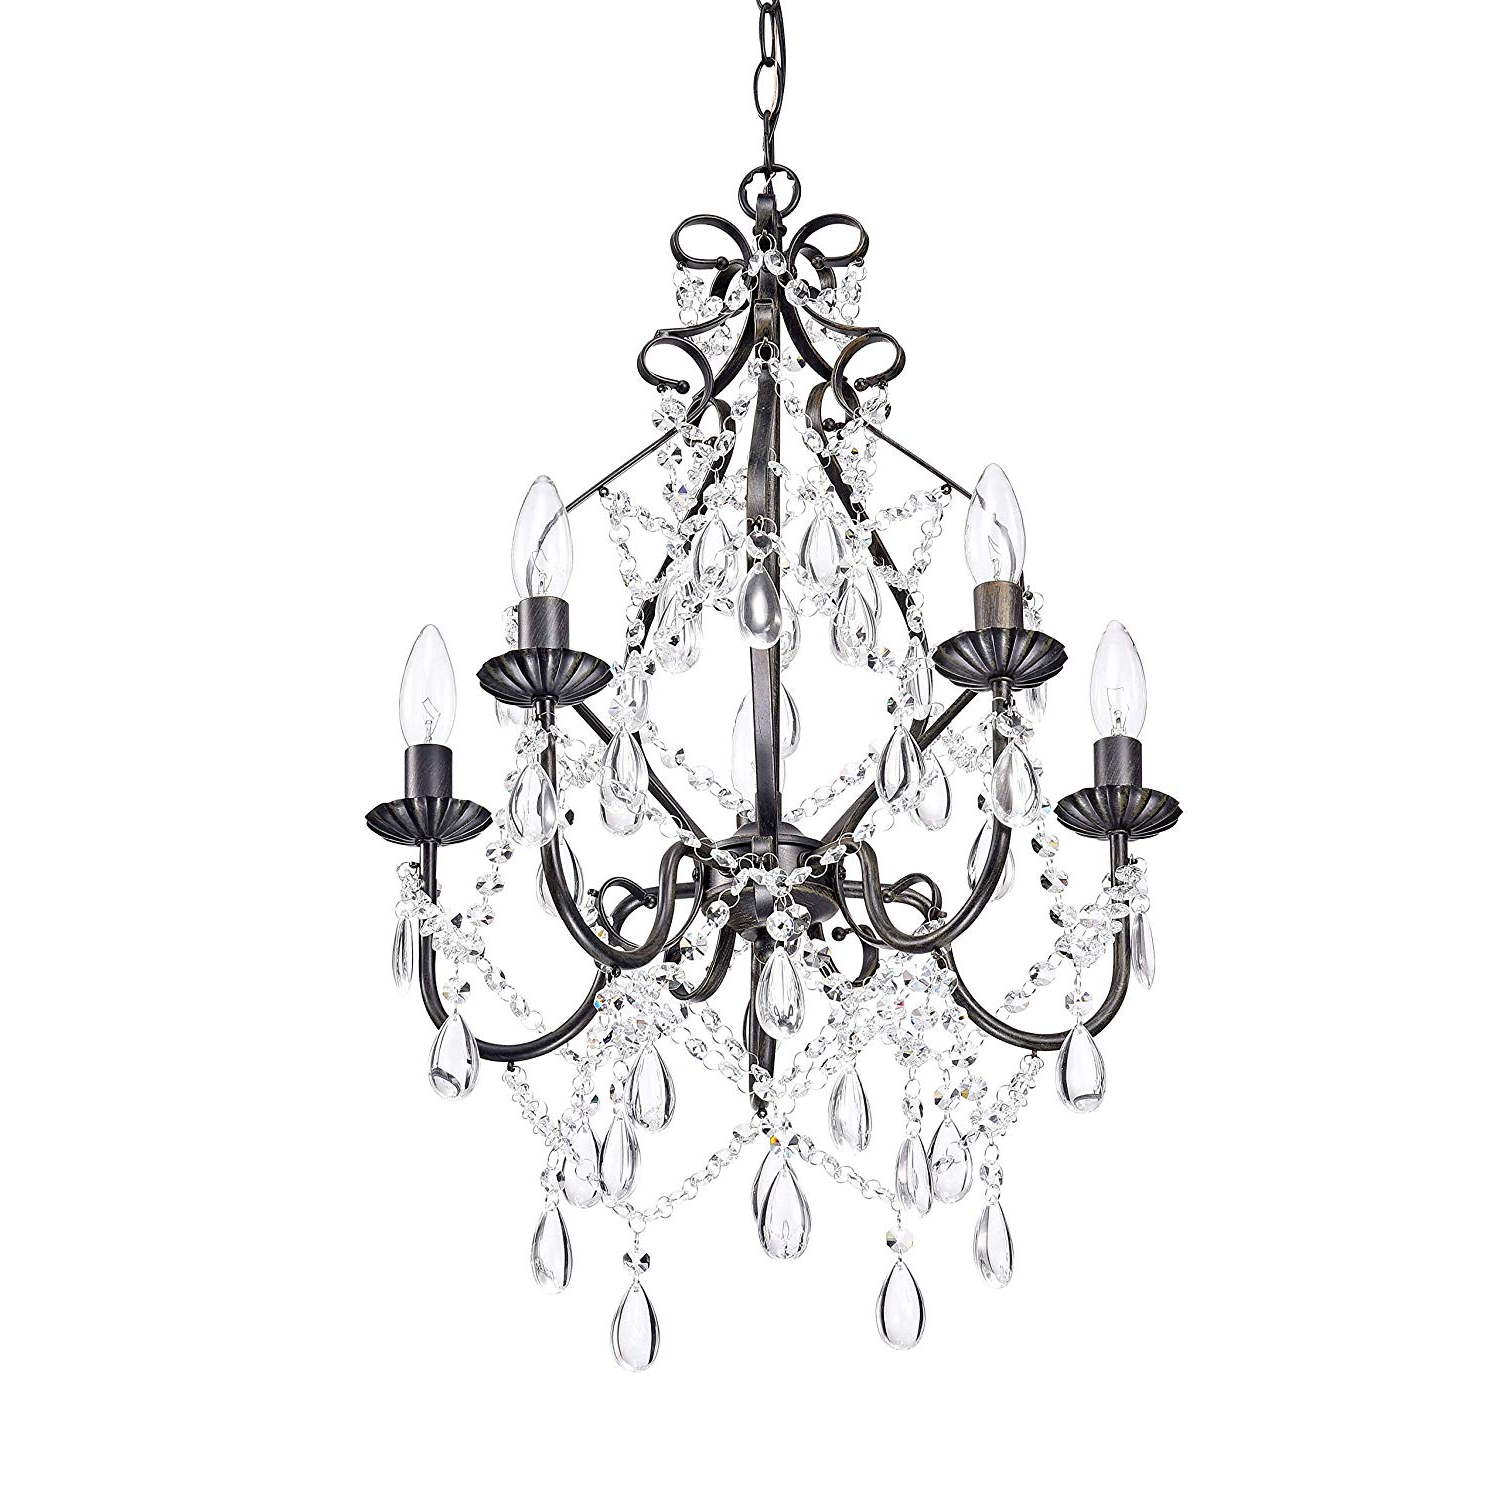 Newest Florentina 5-Light Candle Style Chandeliers within Bethany 5-Light Iron And Crystal Candle Chandelier